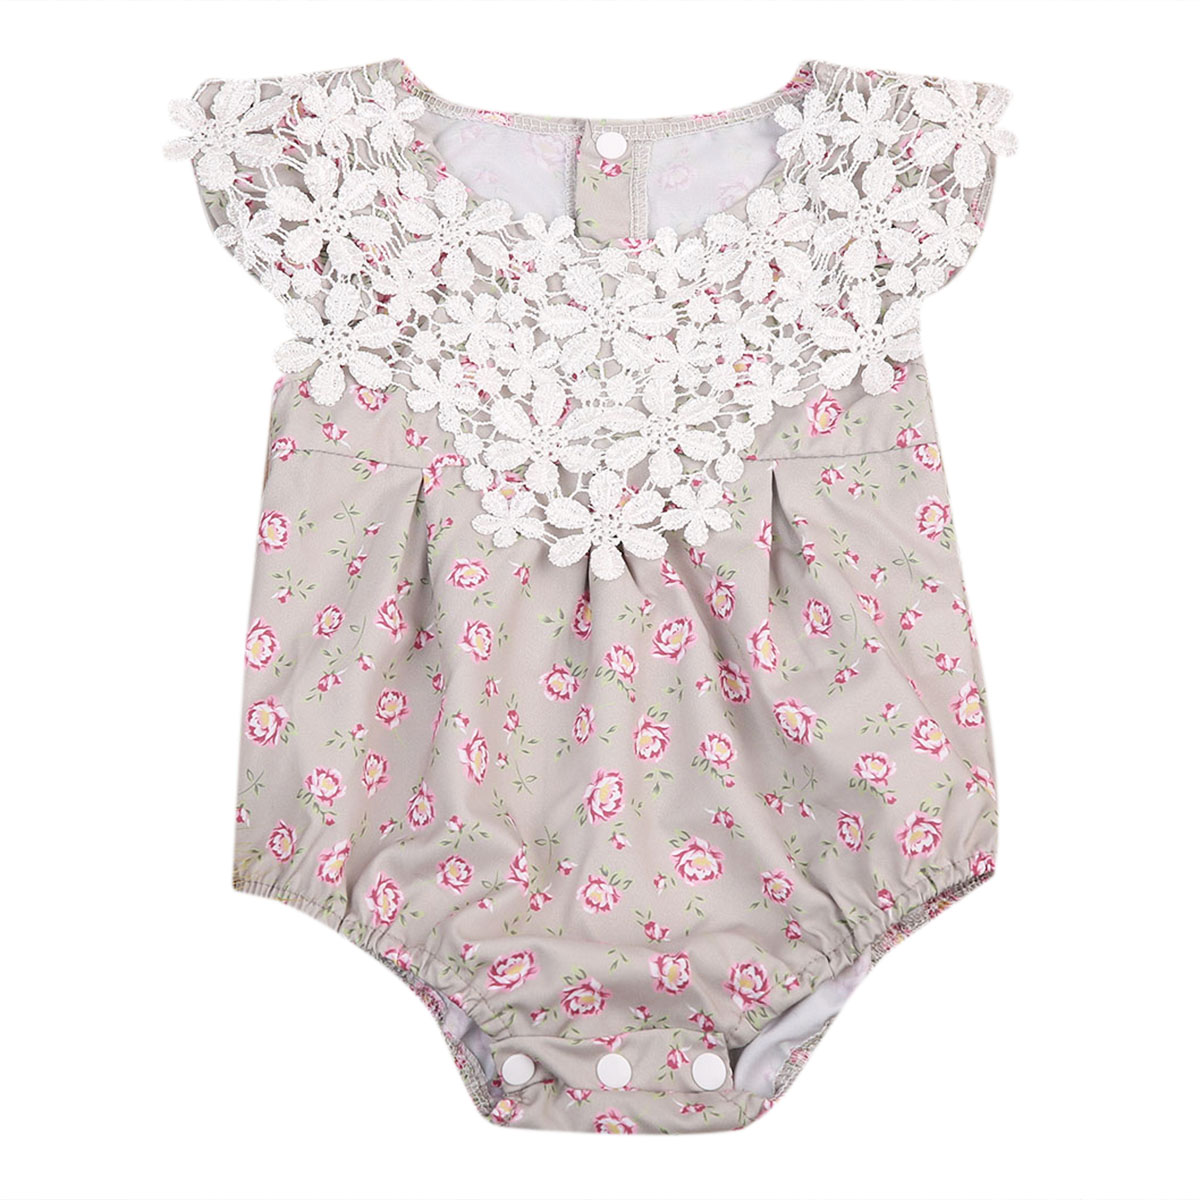 2017 Summer Newborn Baby Girl Clothes Floral Lace Romper Sleeveless Cute Bebes Princess OnePieces Sunsuit Outfit Jumpsuit